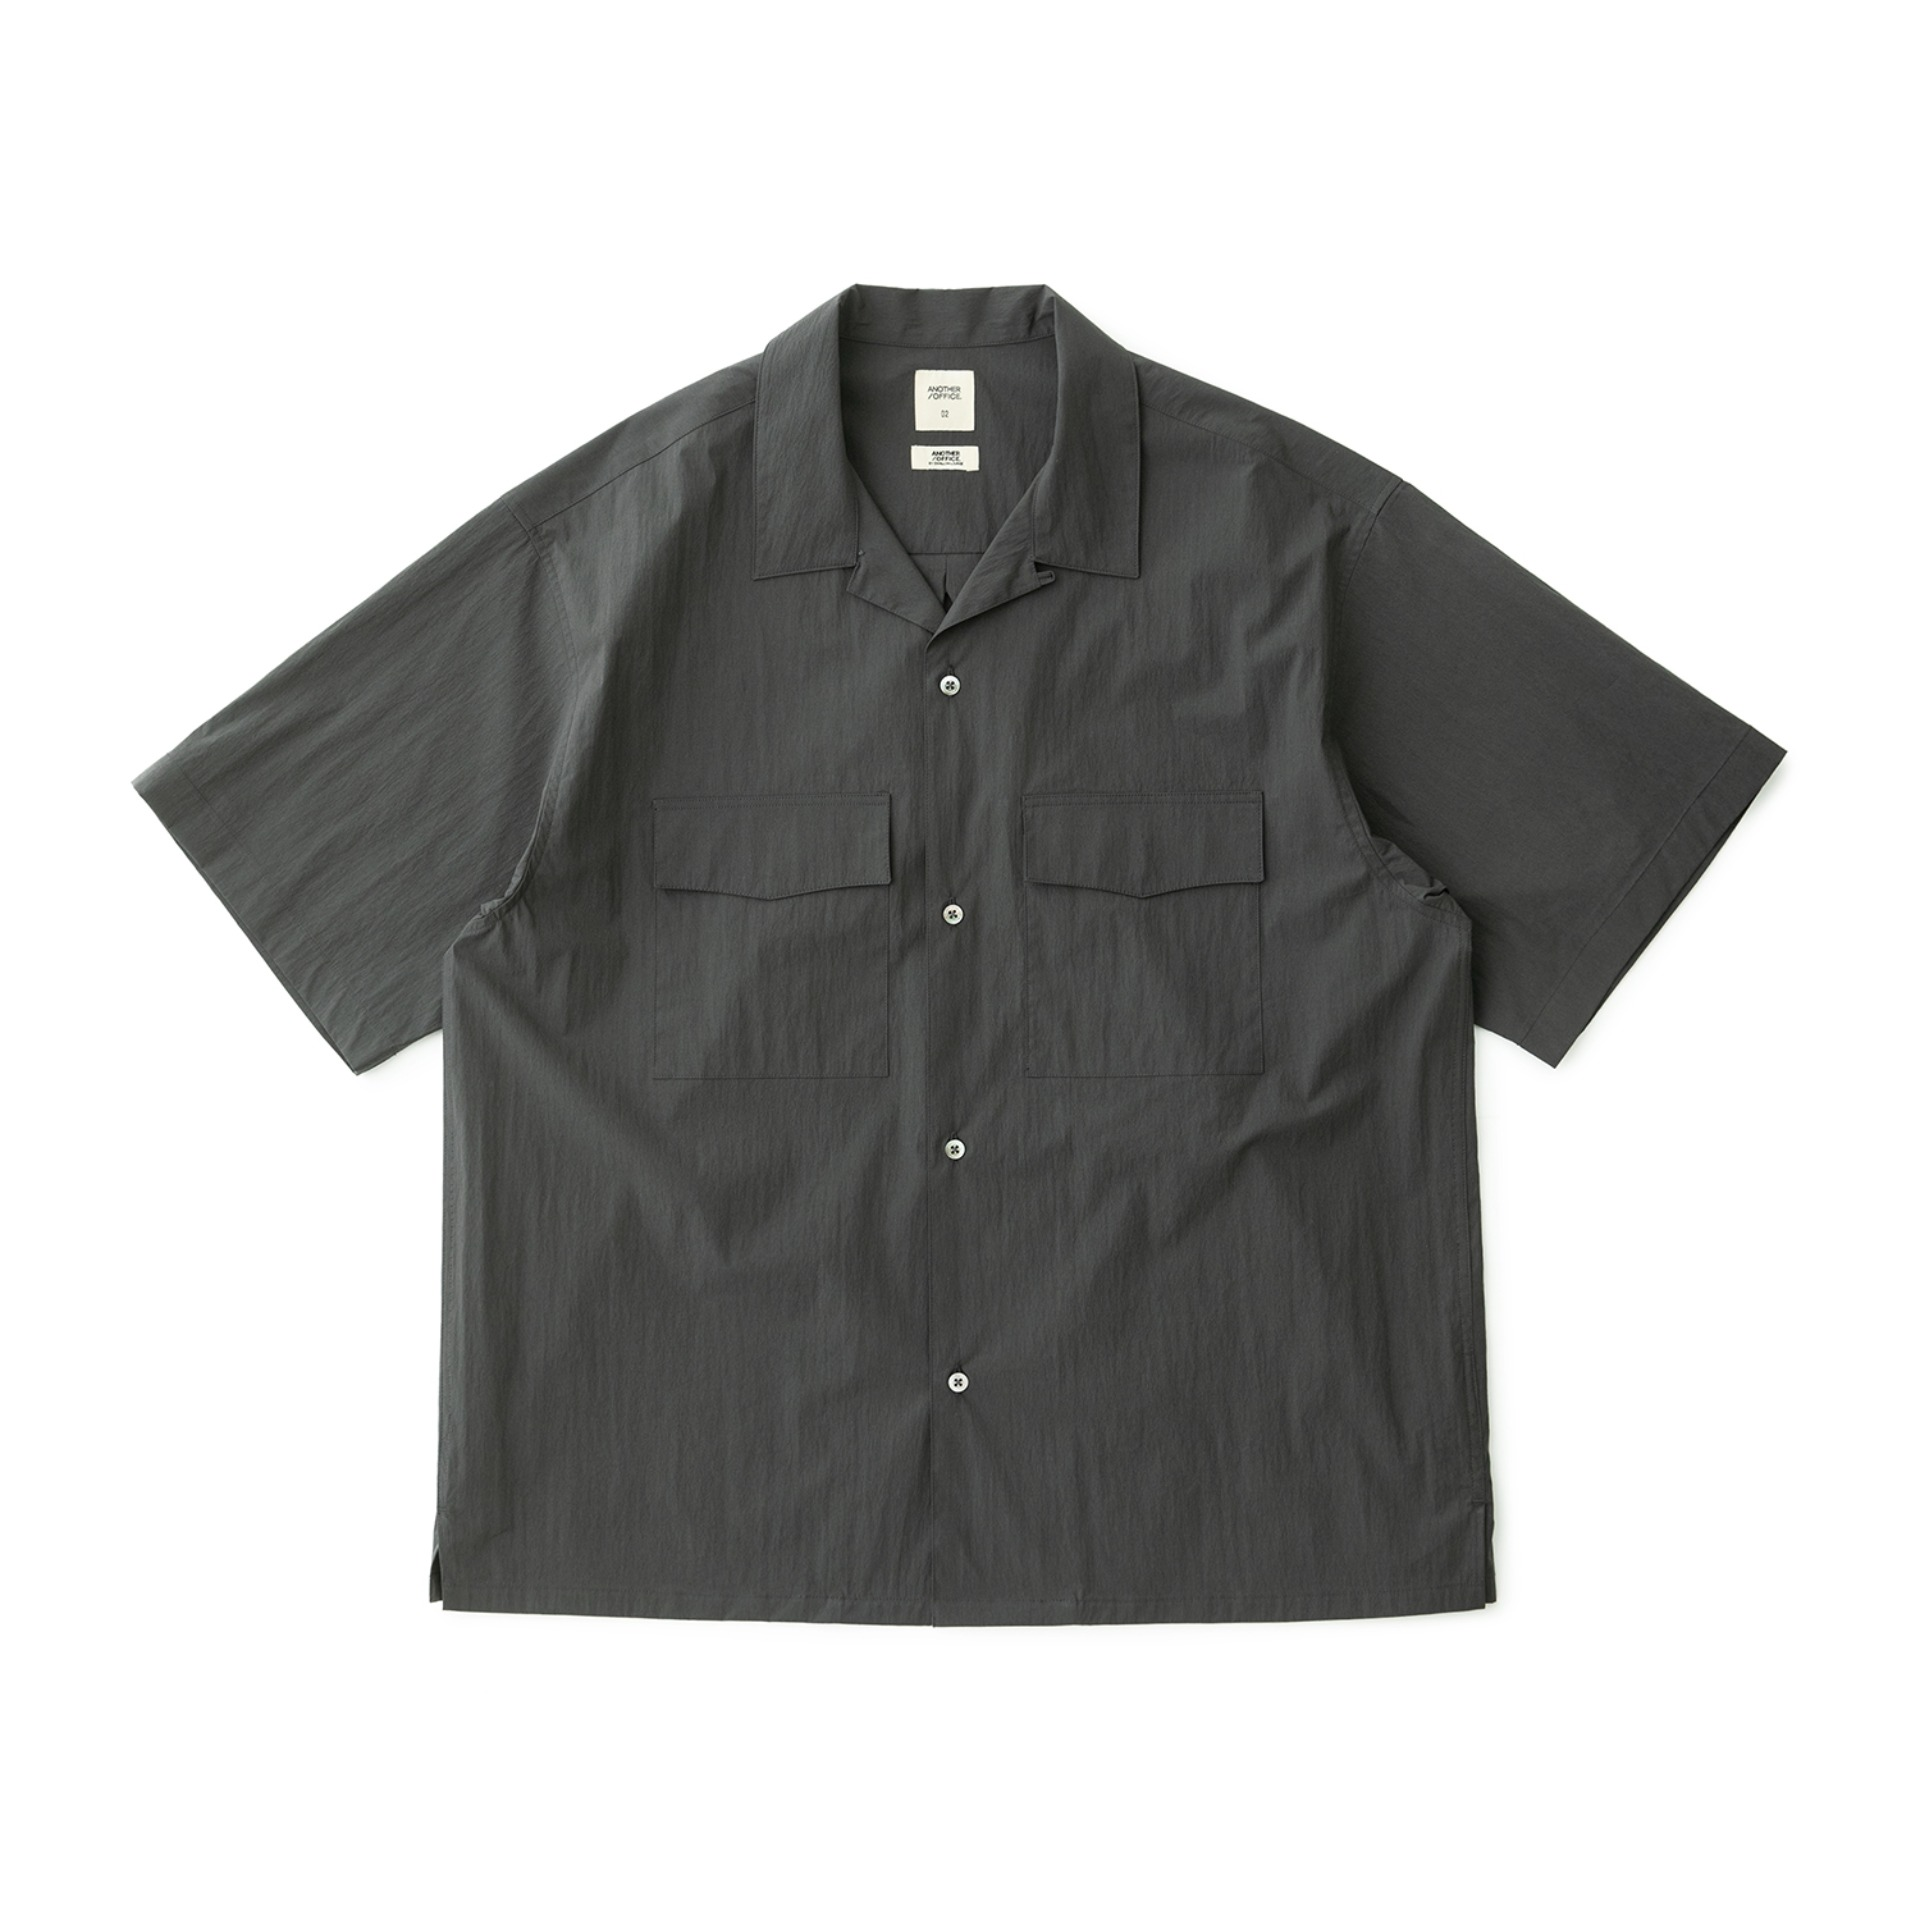 Voyager Open Collor Shirt (Graphite)